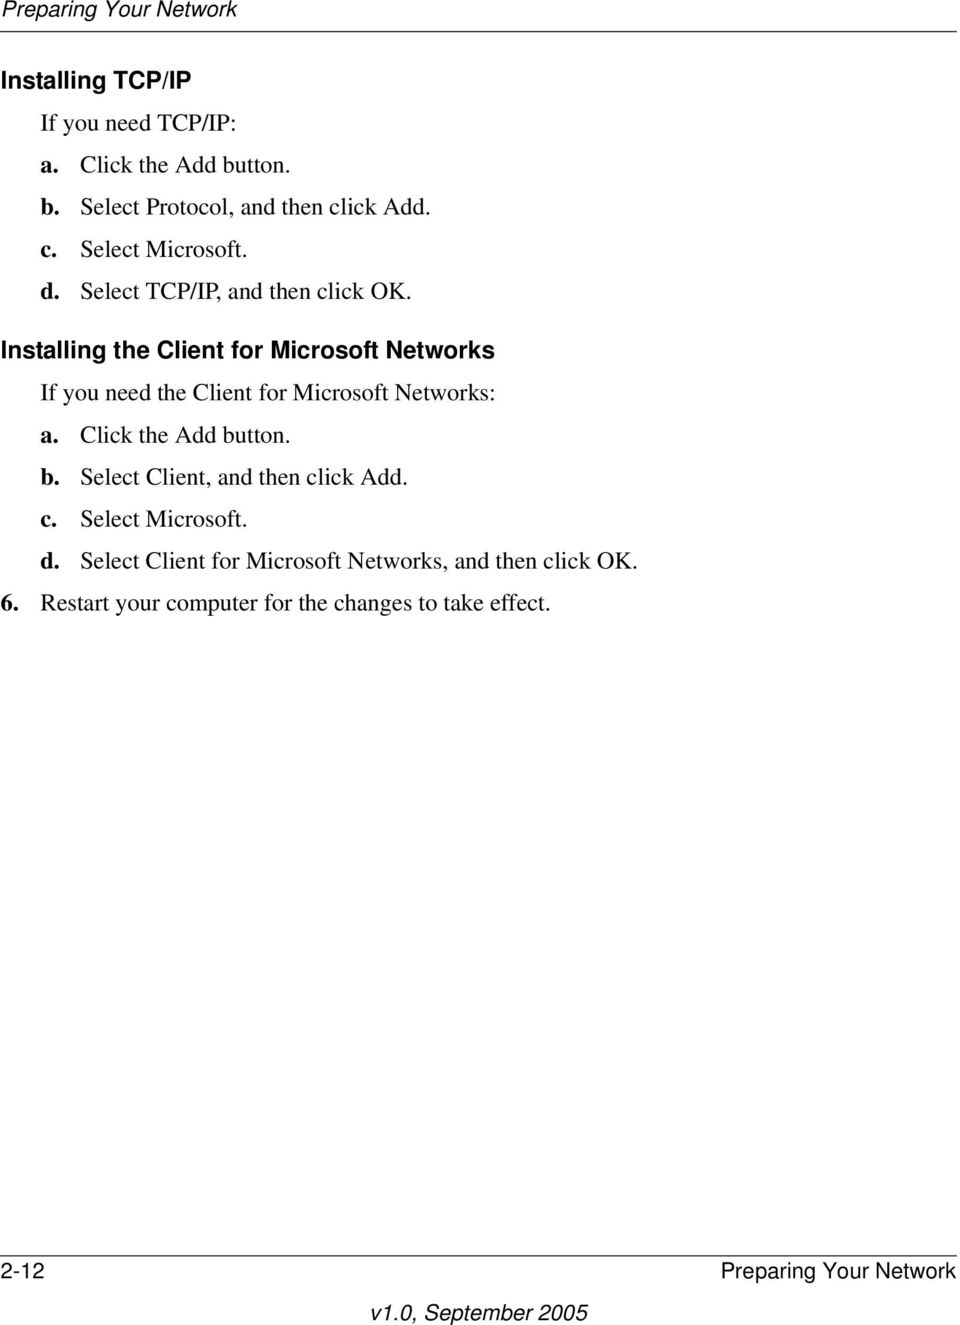 Installing the Client for Microsoft Networks If you need the Client for Microsoft Networks: a. Click the Add bu